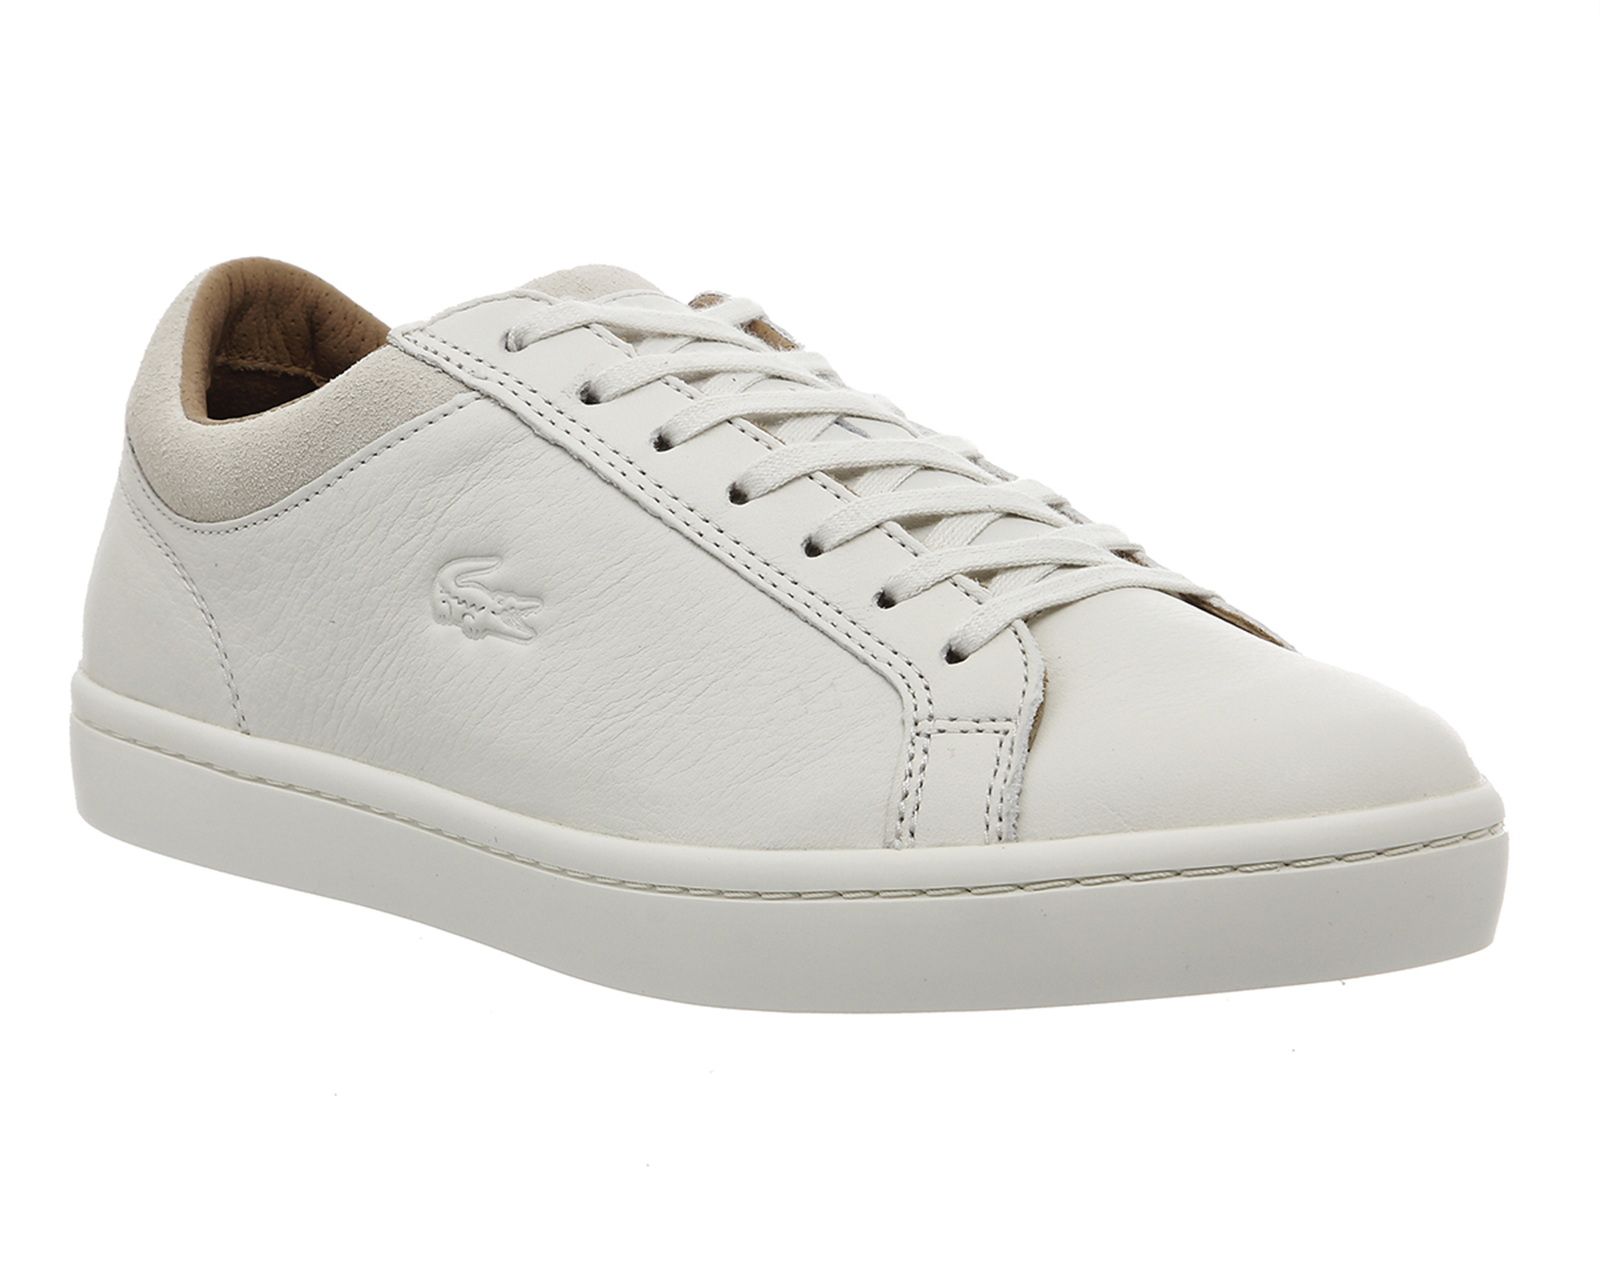 42385e5994901b Lyst - Lacoste Straightset in White for Men